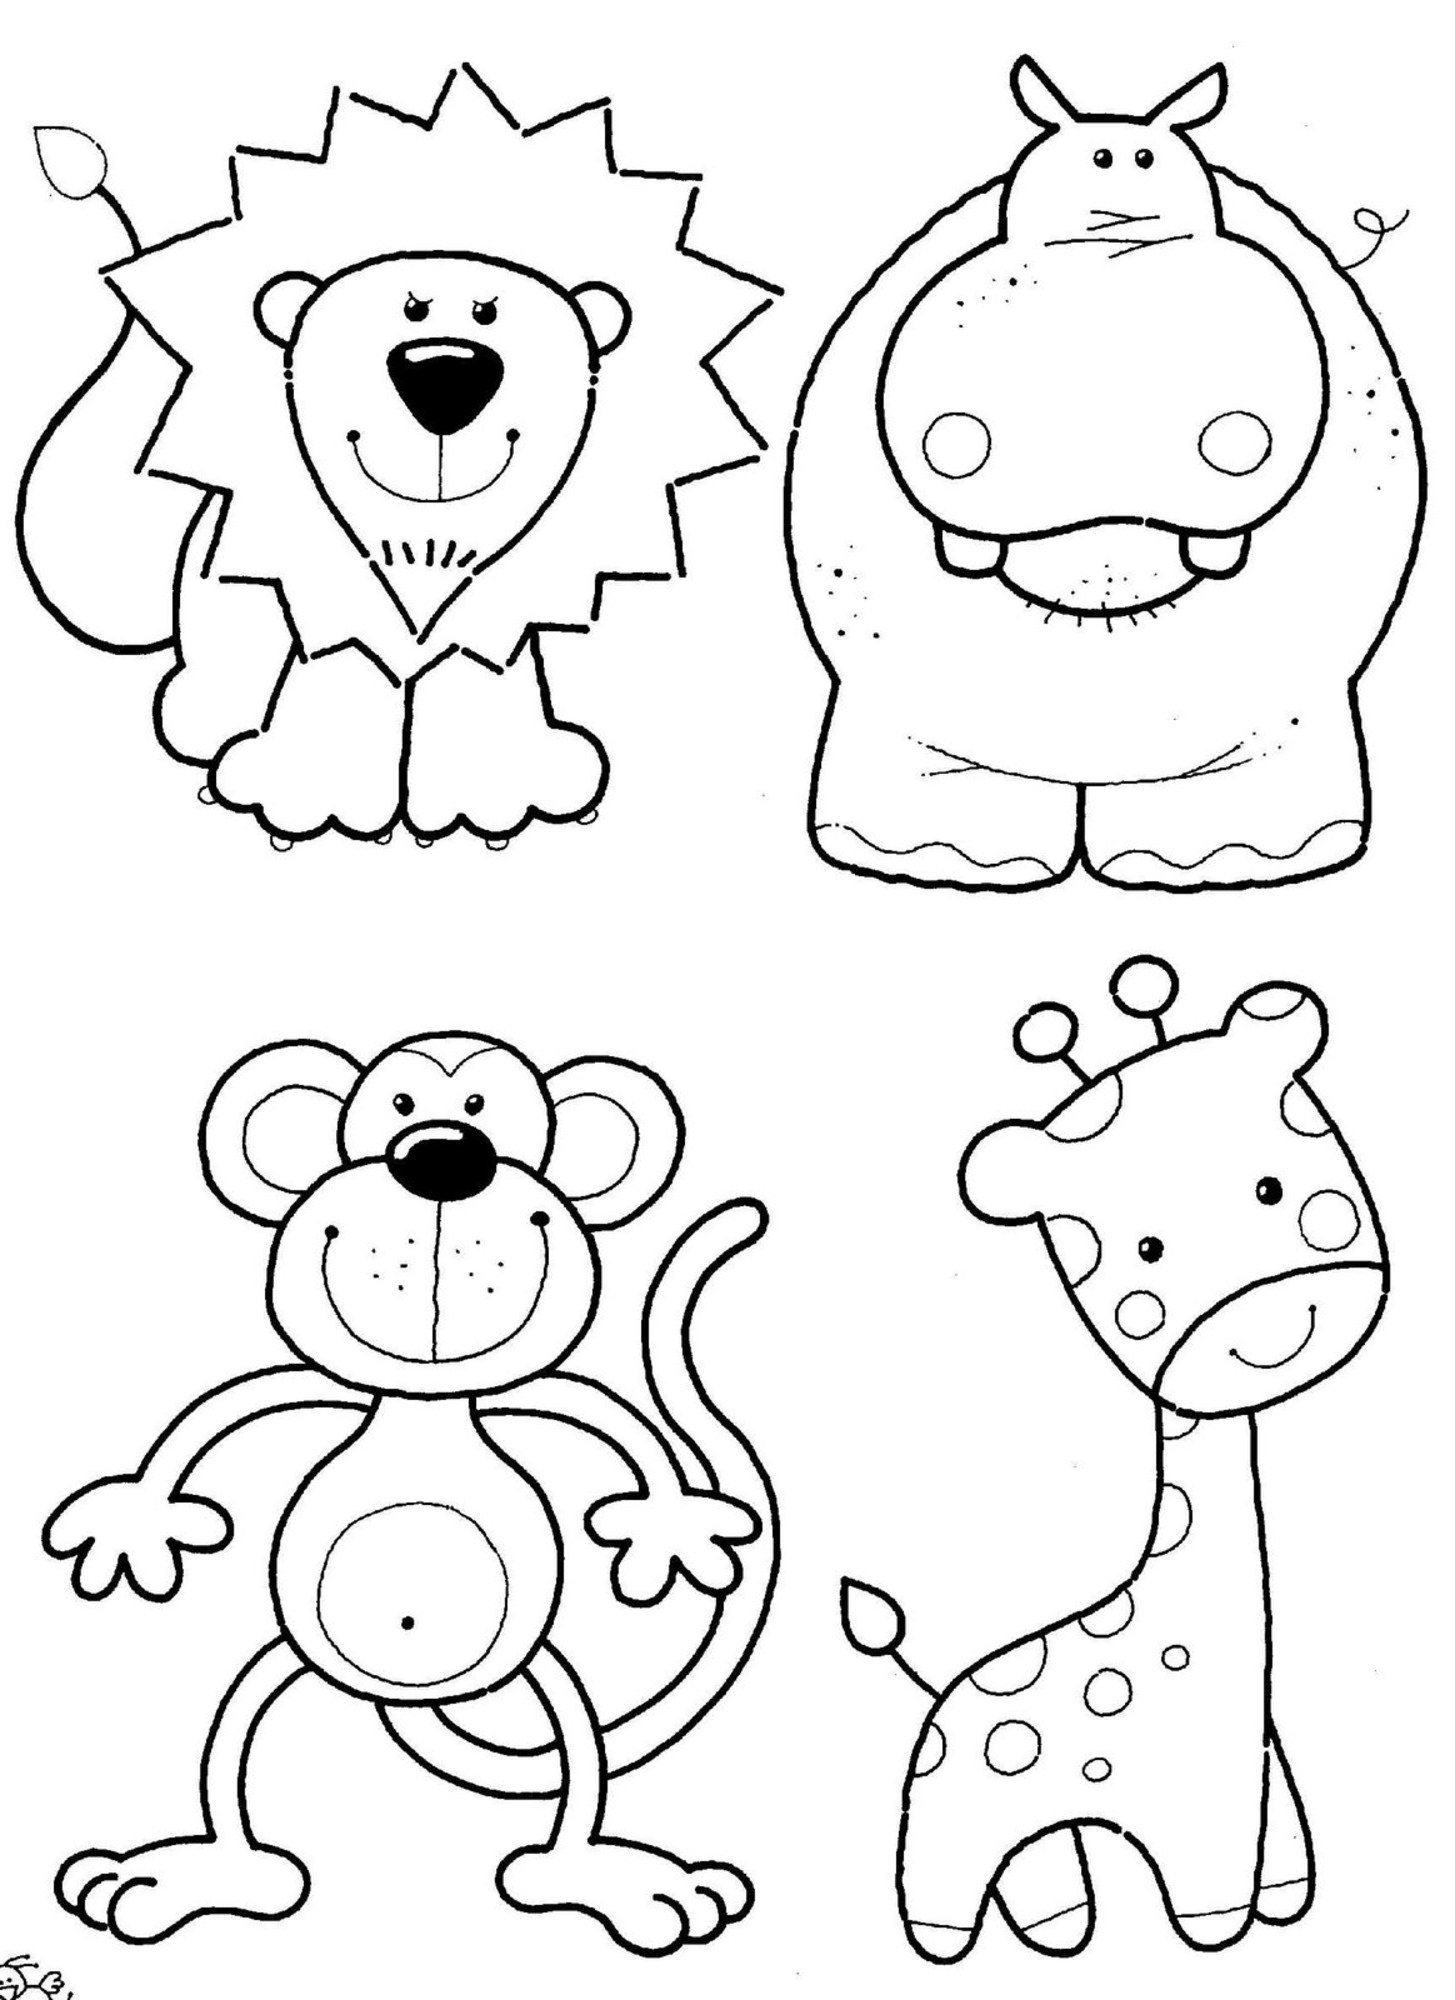 printable zoo animal coloring pages coloring lab animal pages printable coloring zoo